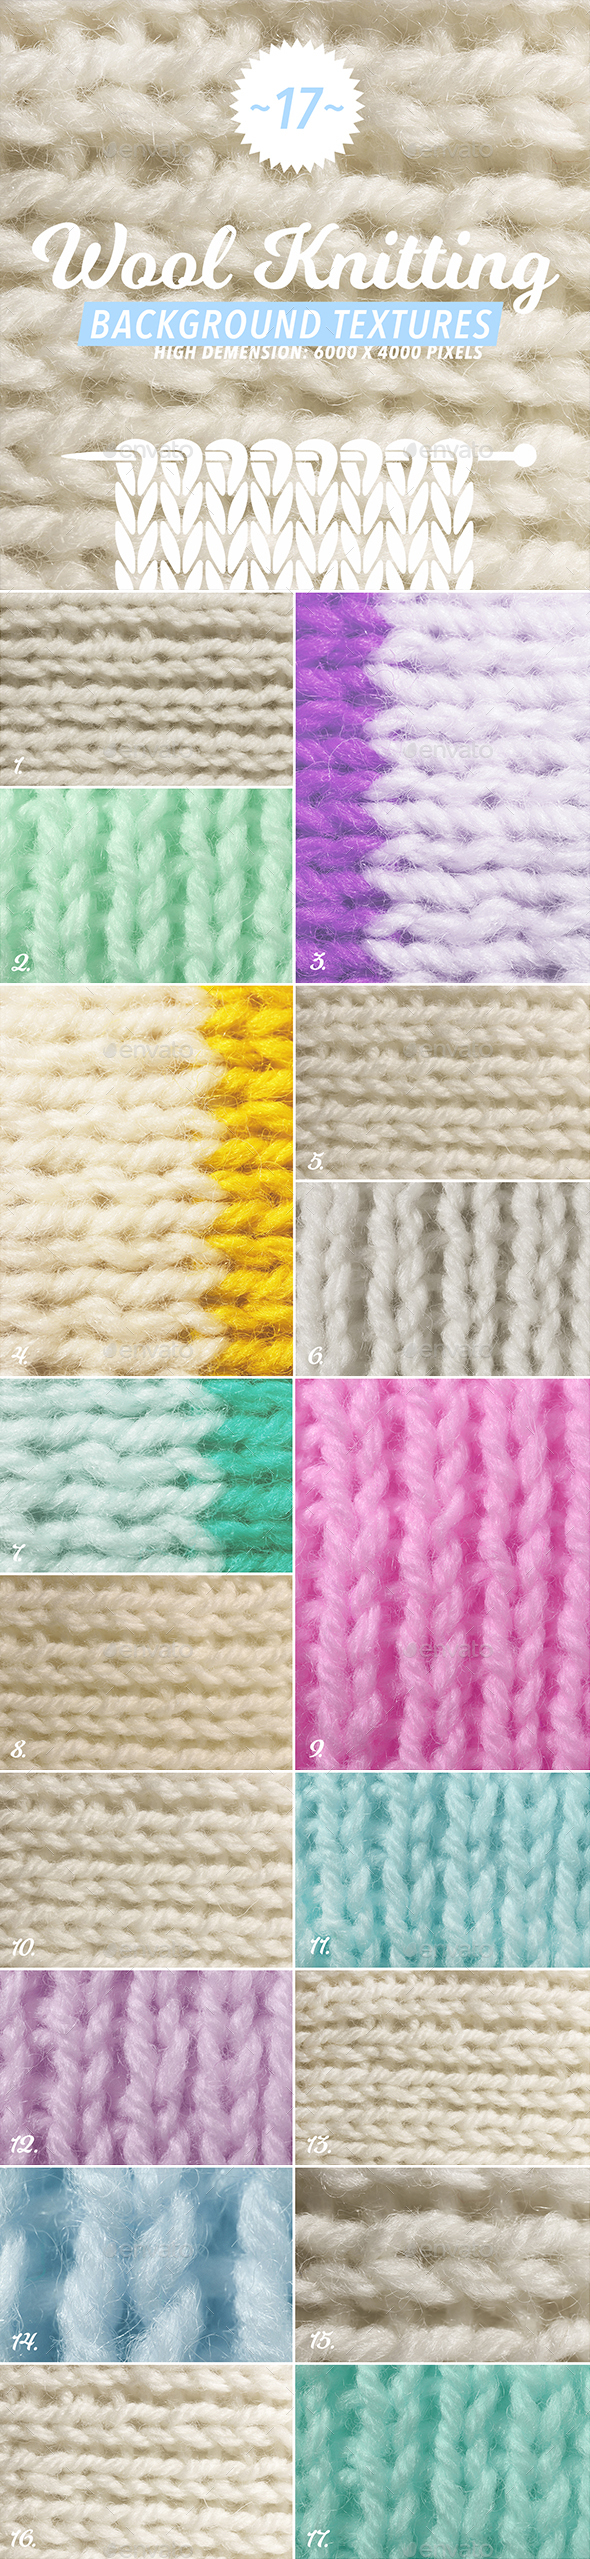 17 Wool Knitting Textures - Fabric Textures